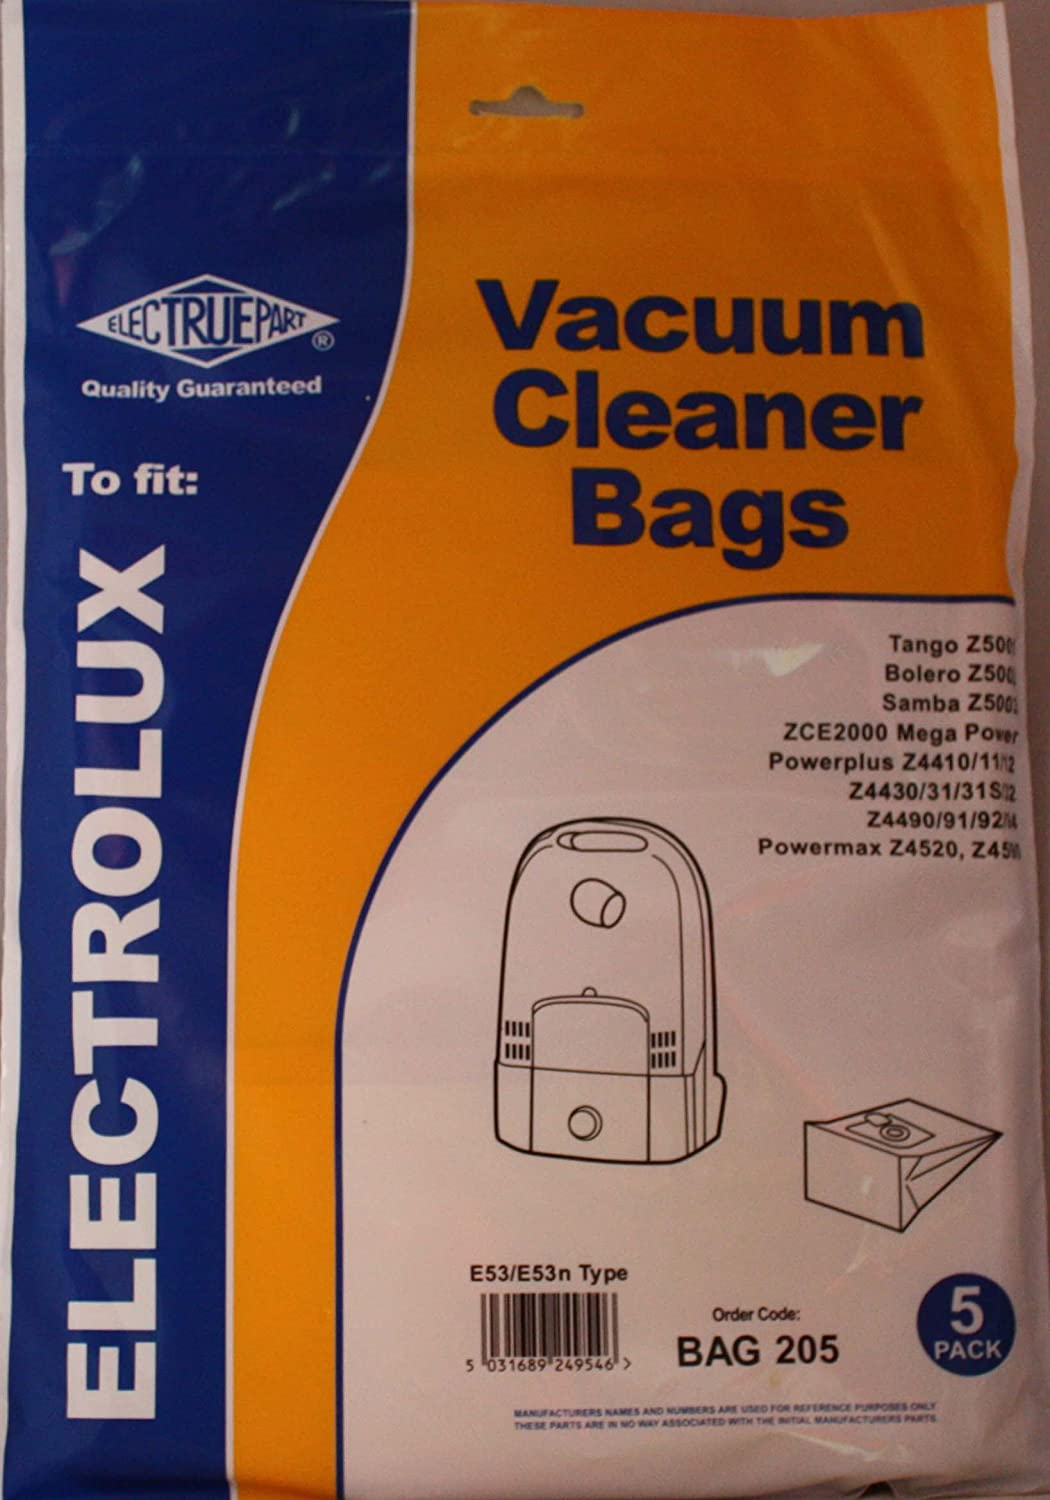 Electrolux Vacuum Cleaner Bags E53/E53n Type - 5 Pack